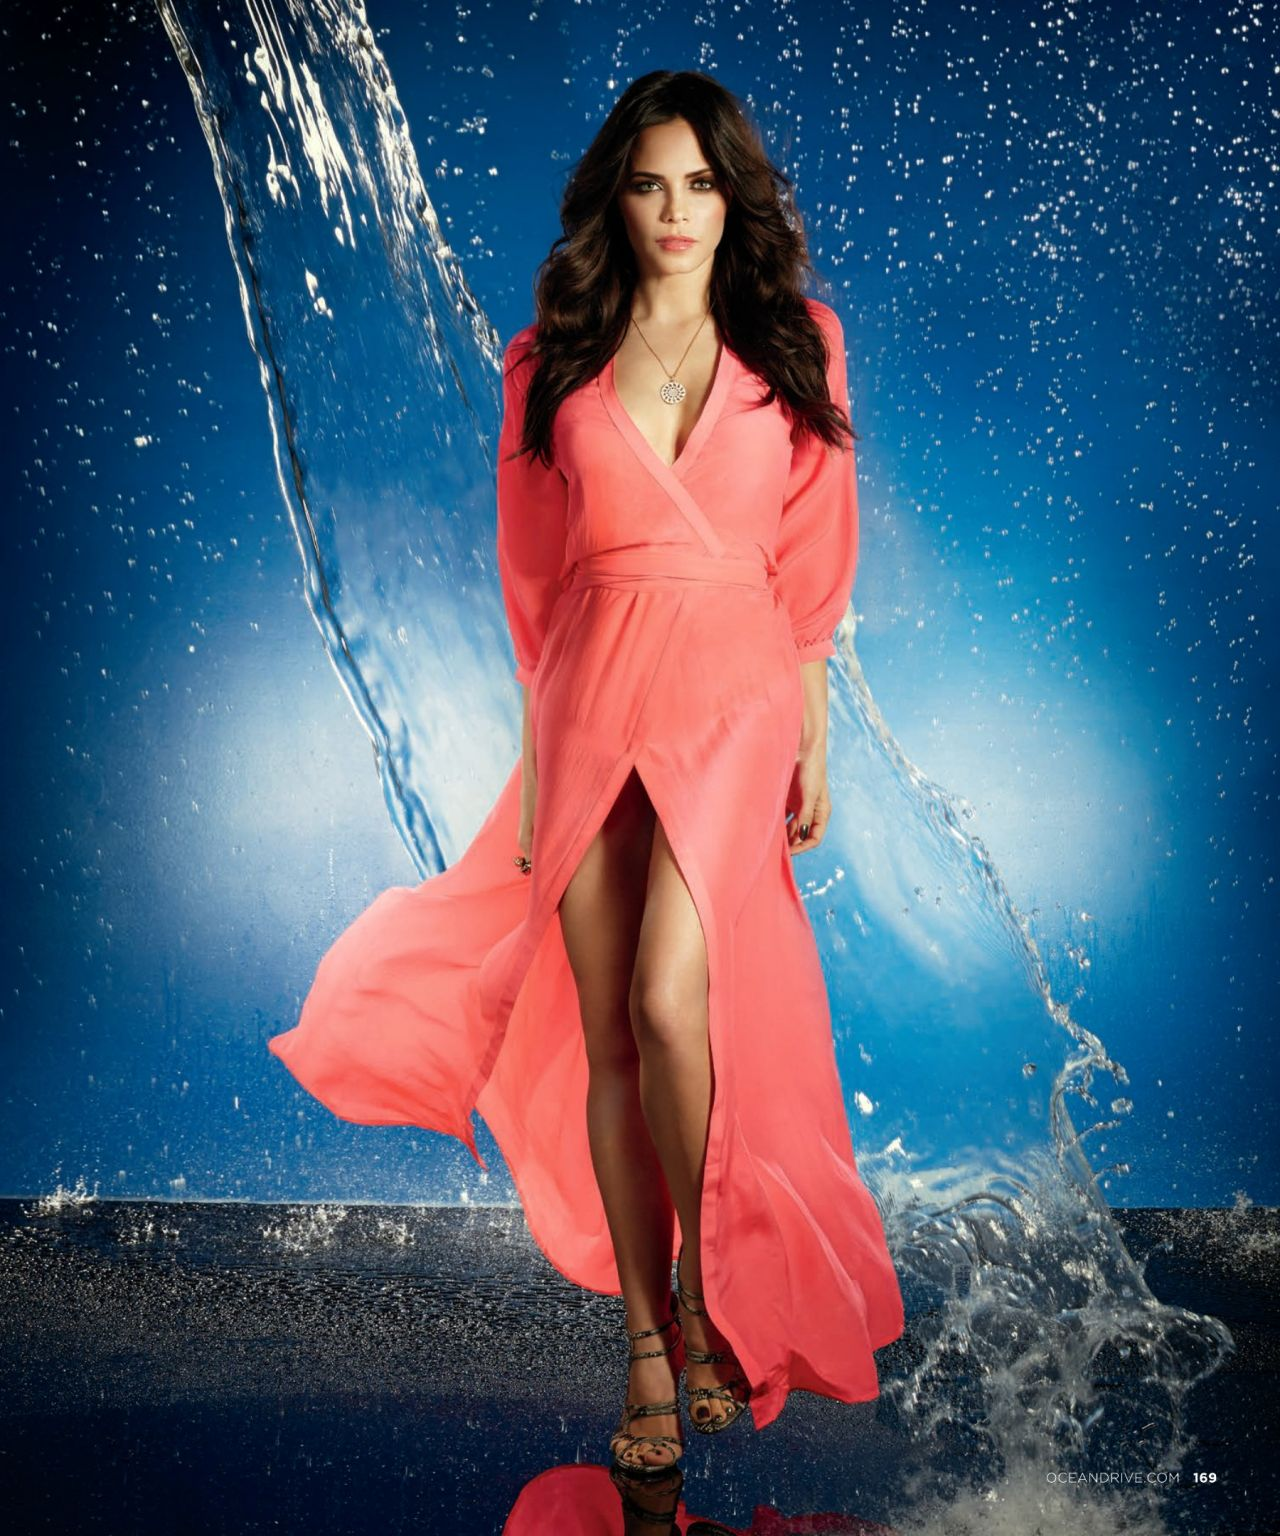 Jenna Dewan-Tatum - OCEAN DRIVE Magazine - January 2014 Issue